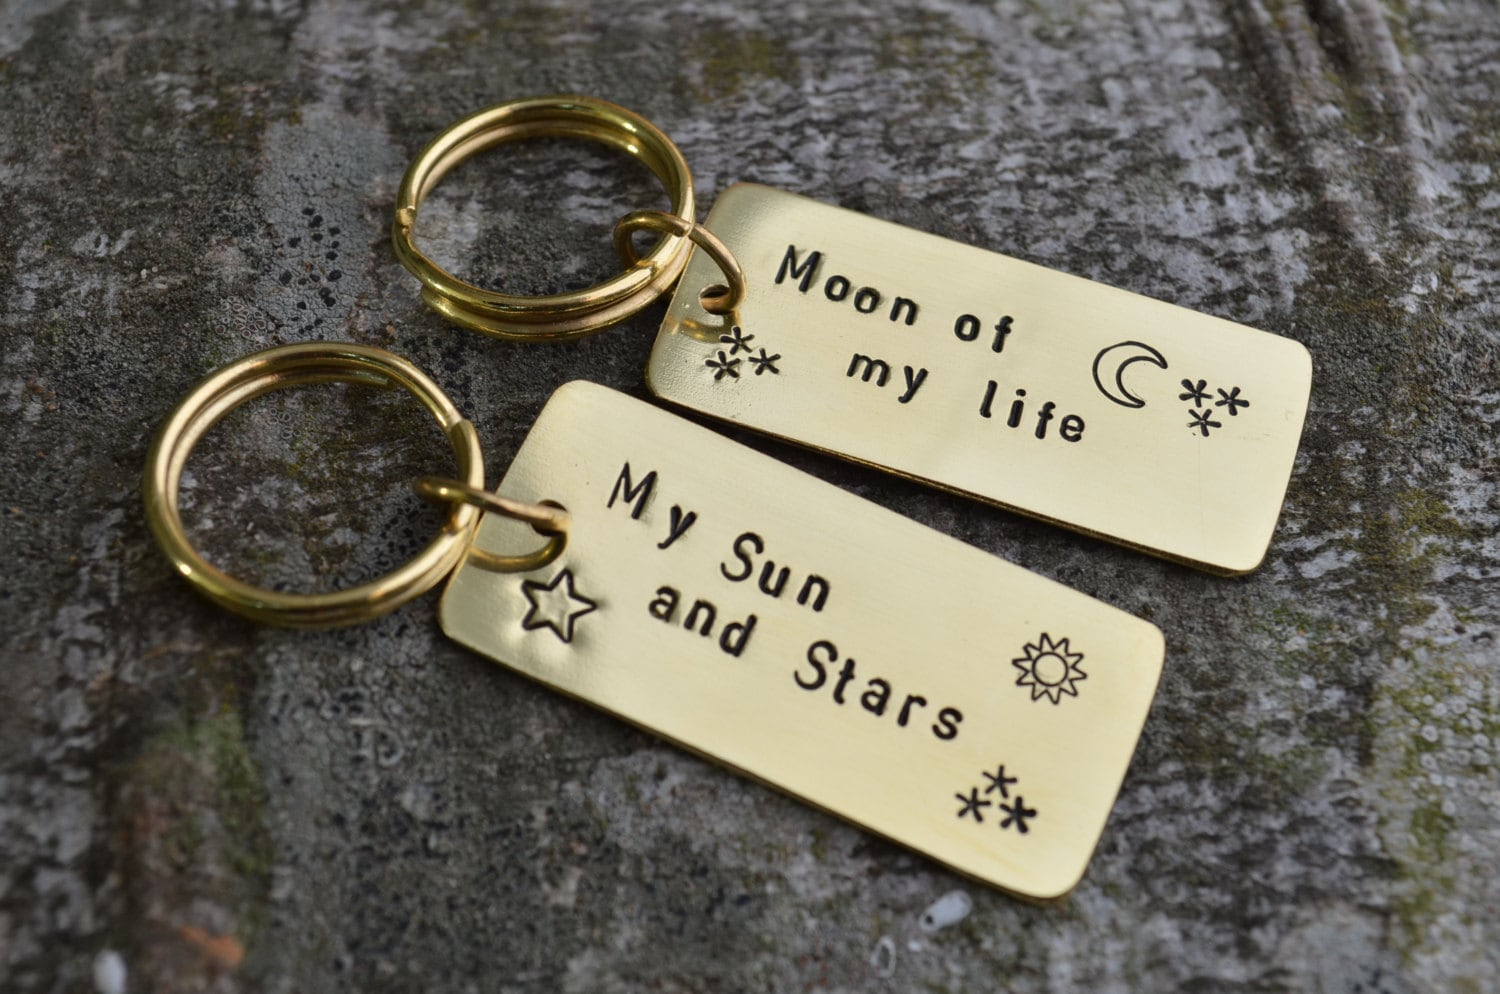 Game of Thrones, Anniversary Gifts For Men, Boyfriend Gift, Girlfriend Gift, Moon of My Life, Couples Keychain, Long Distance Relationship